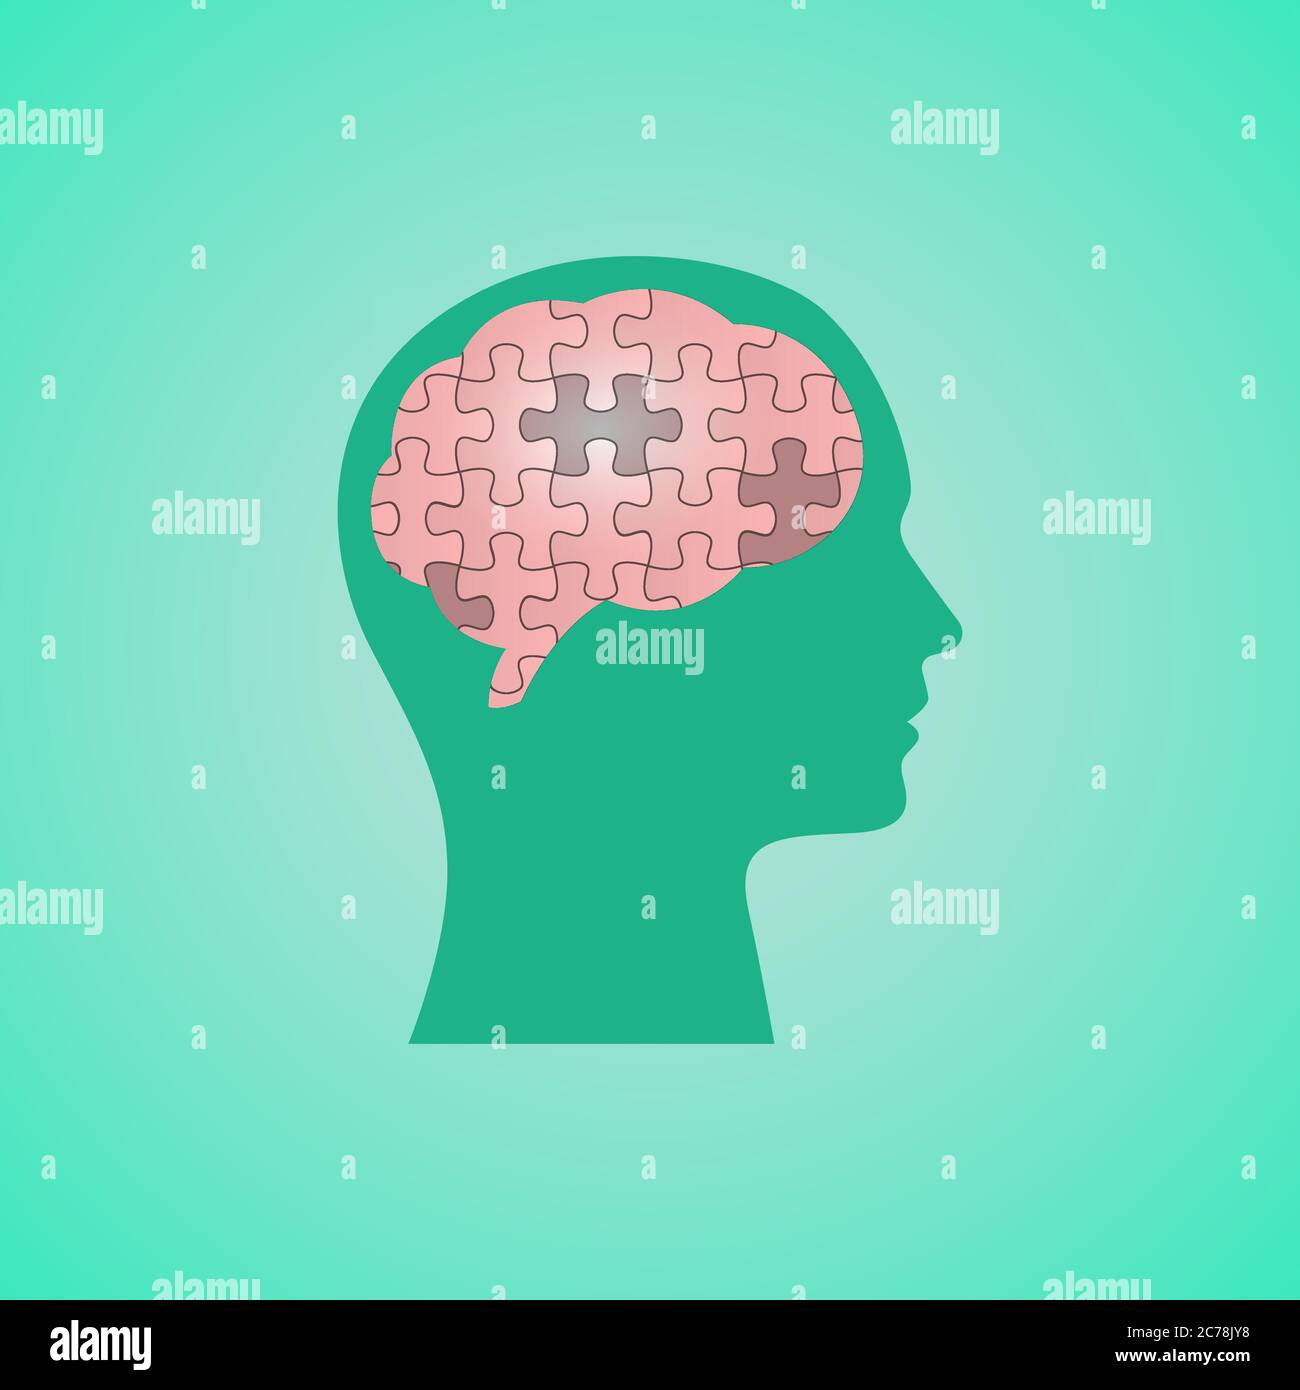 Human Head With Puzzled Brain Over Green Background, Vector Illustration Stock Vector